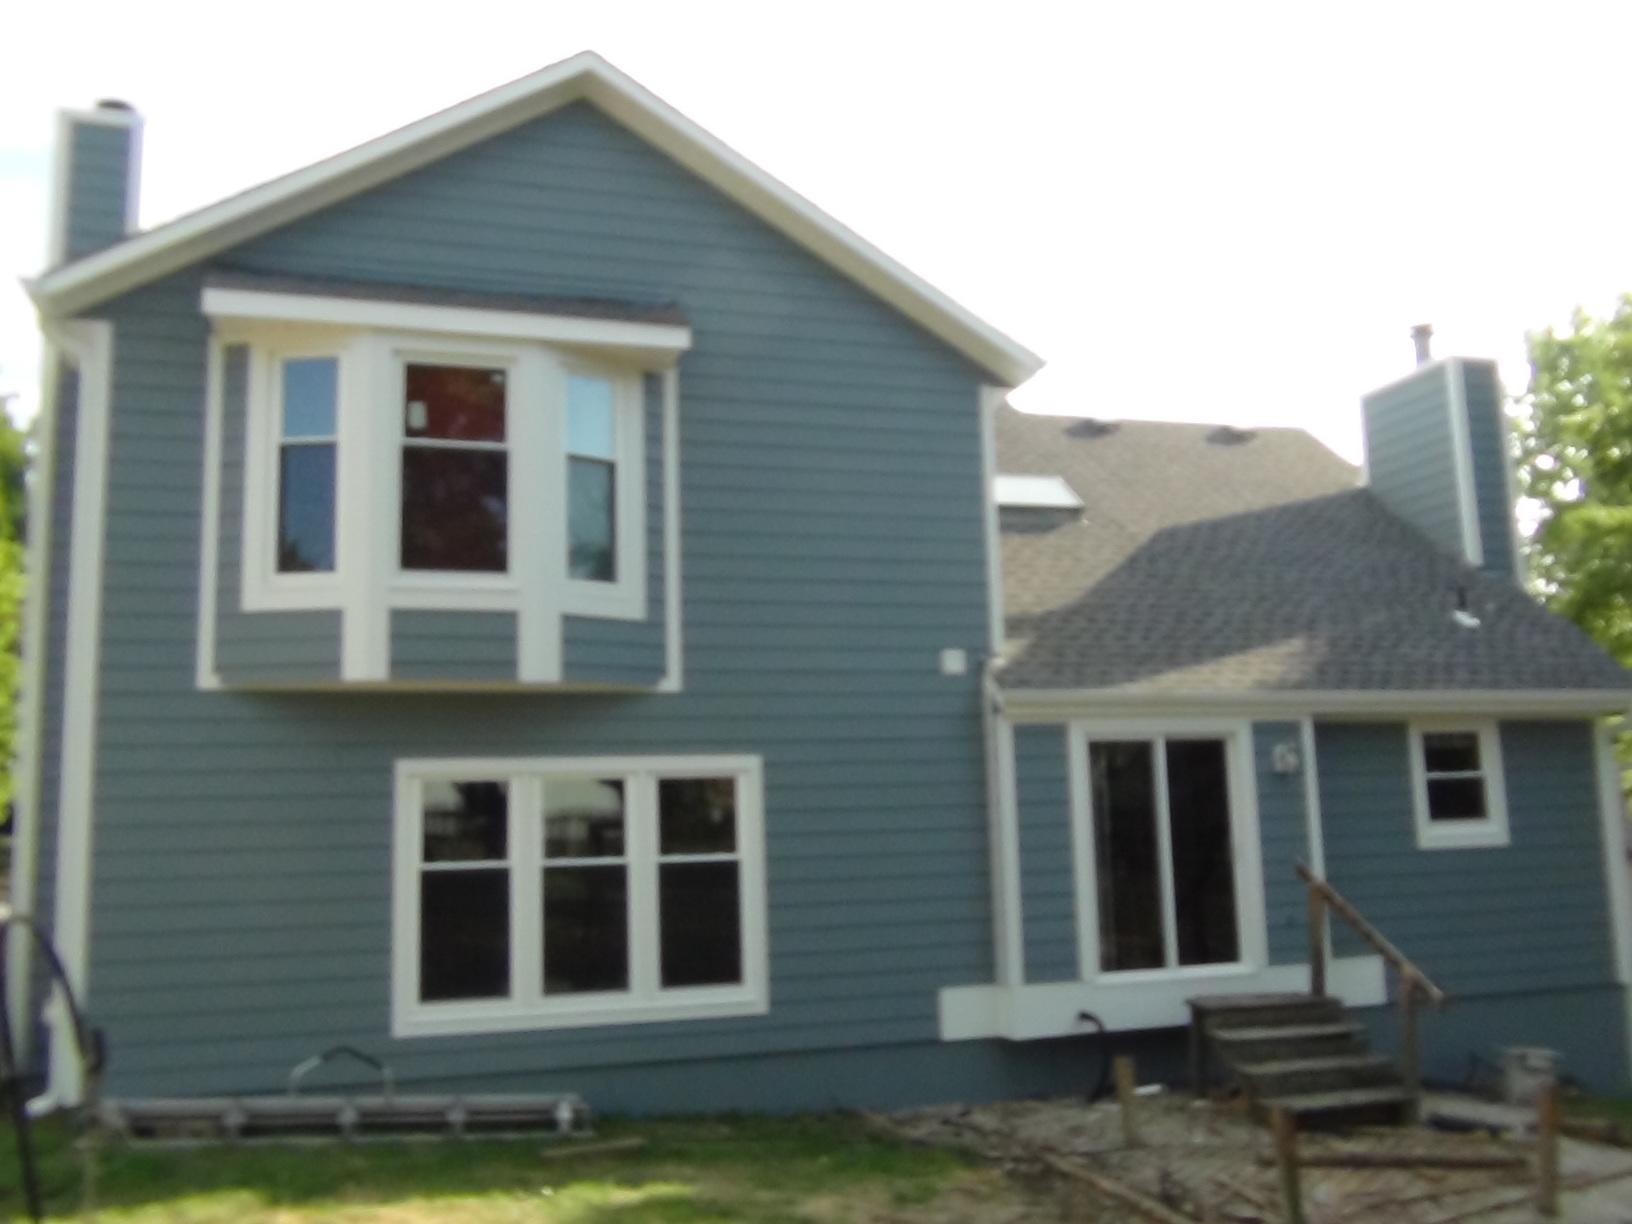 Replacement James Hardie Siding and new windows in Overland Park, KS